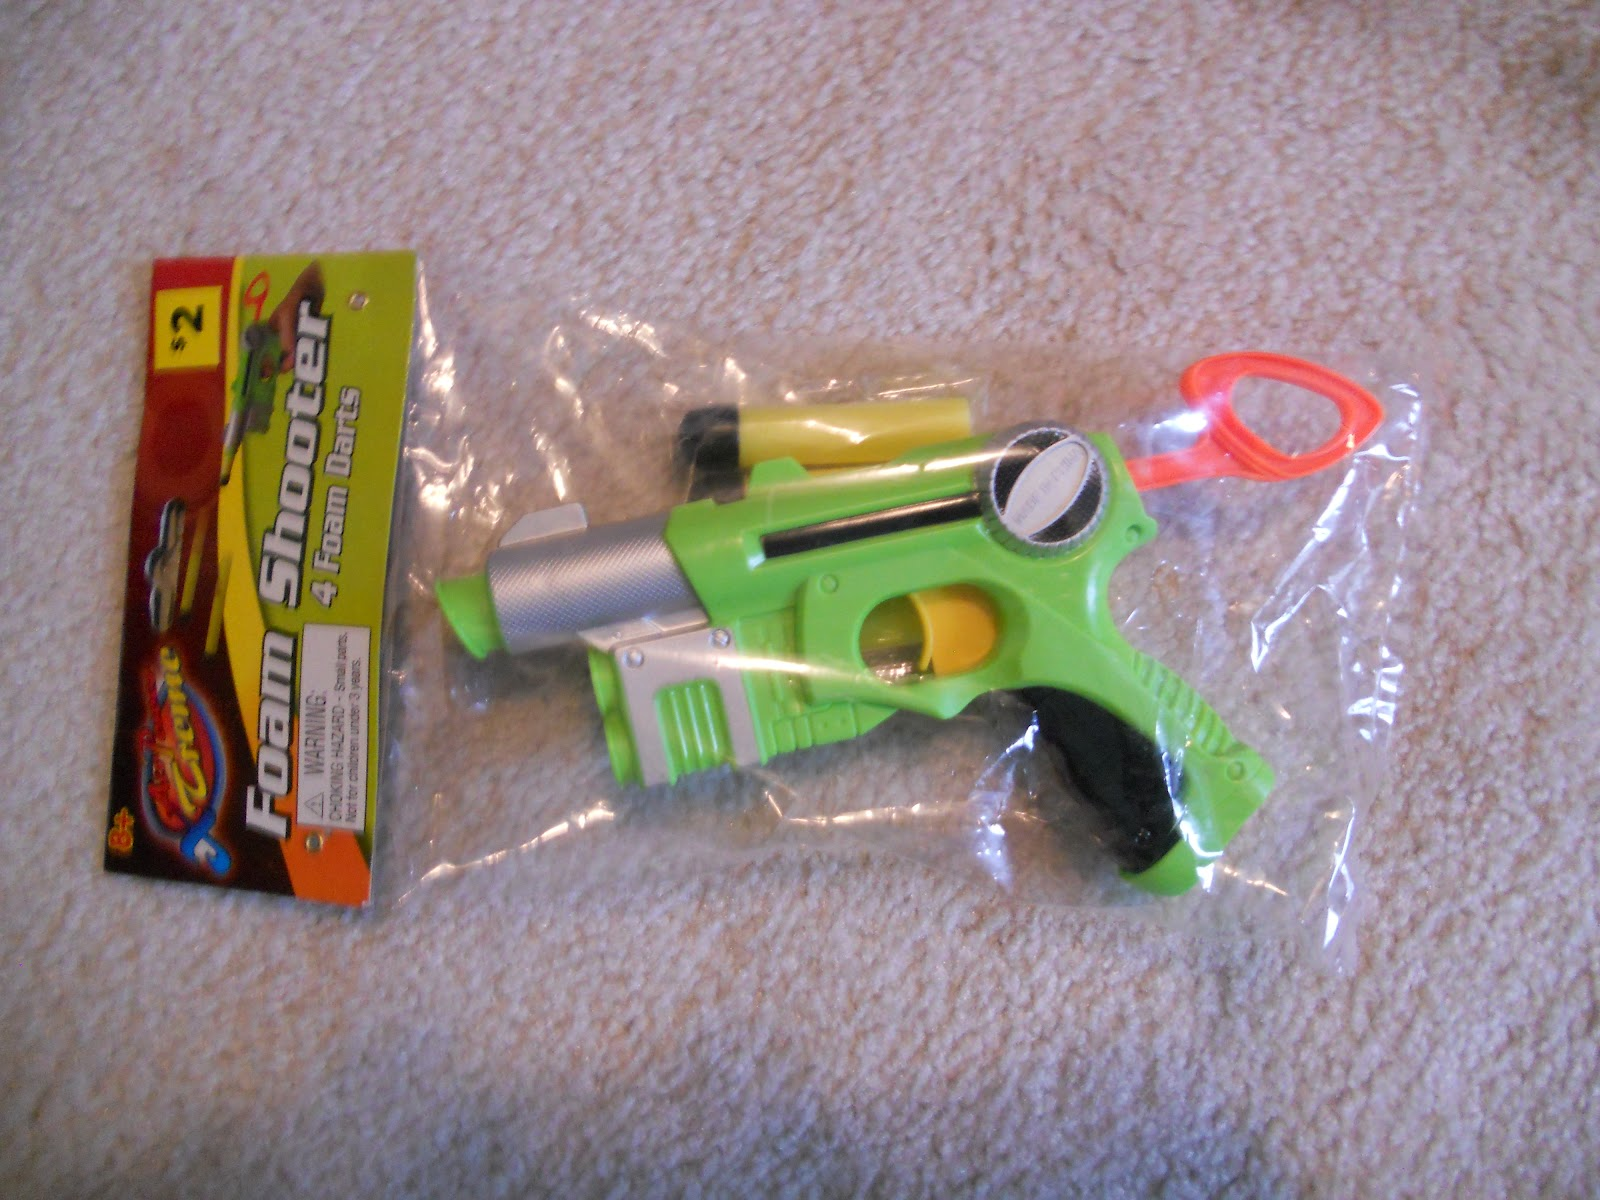 At first glance it looks a lot like a rebranded 1st gen Nitefinder with a Tech Tar plunger rod However the similarities to either of those blasters